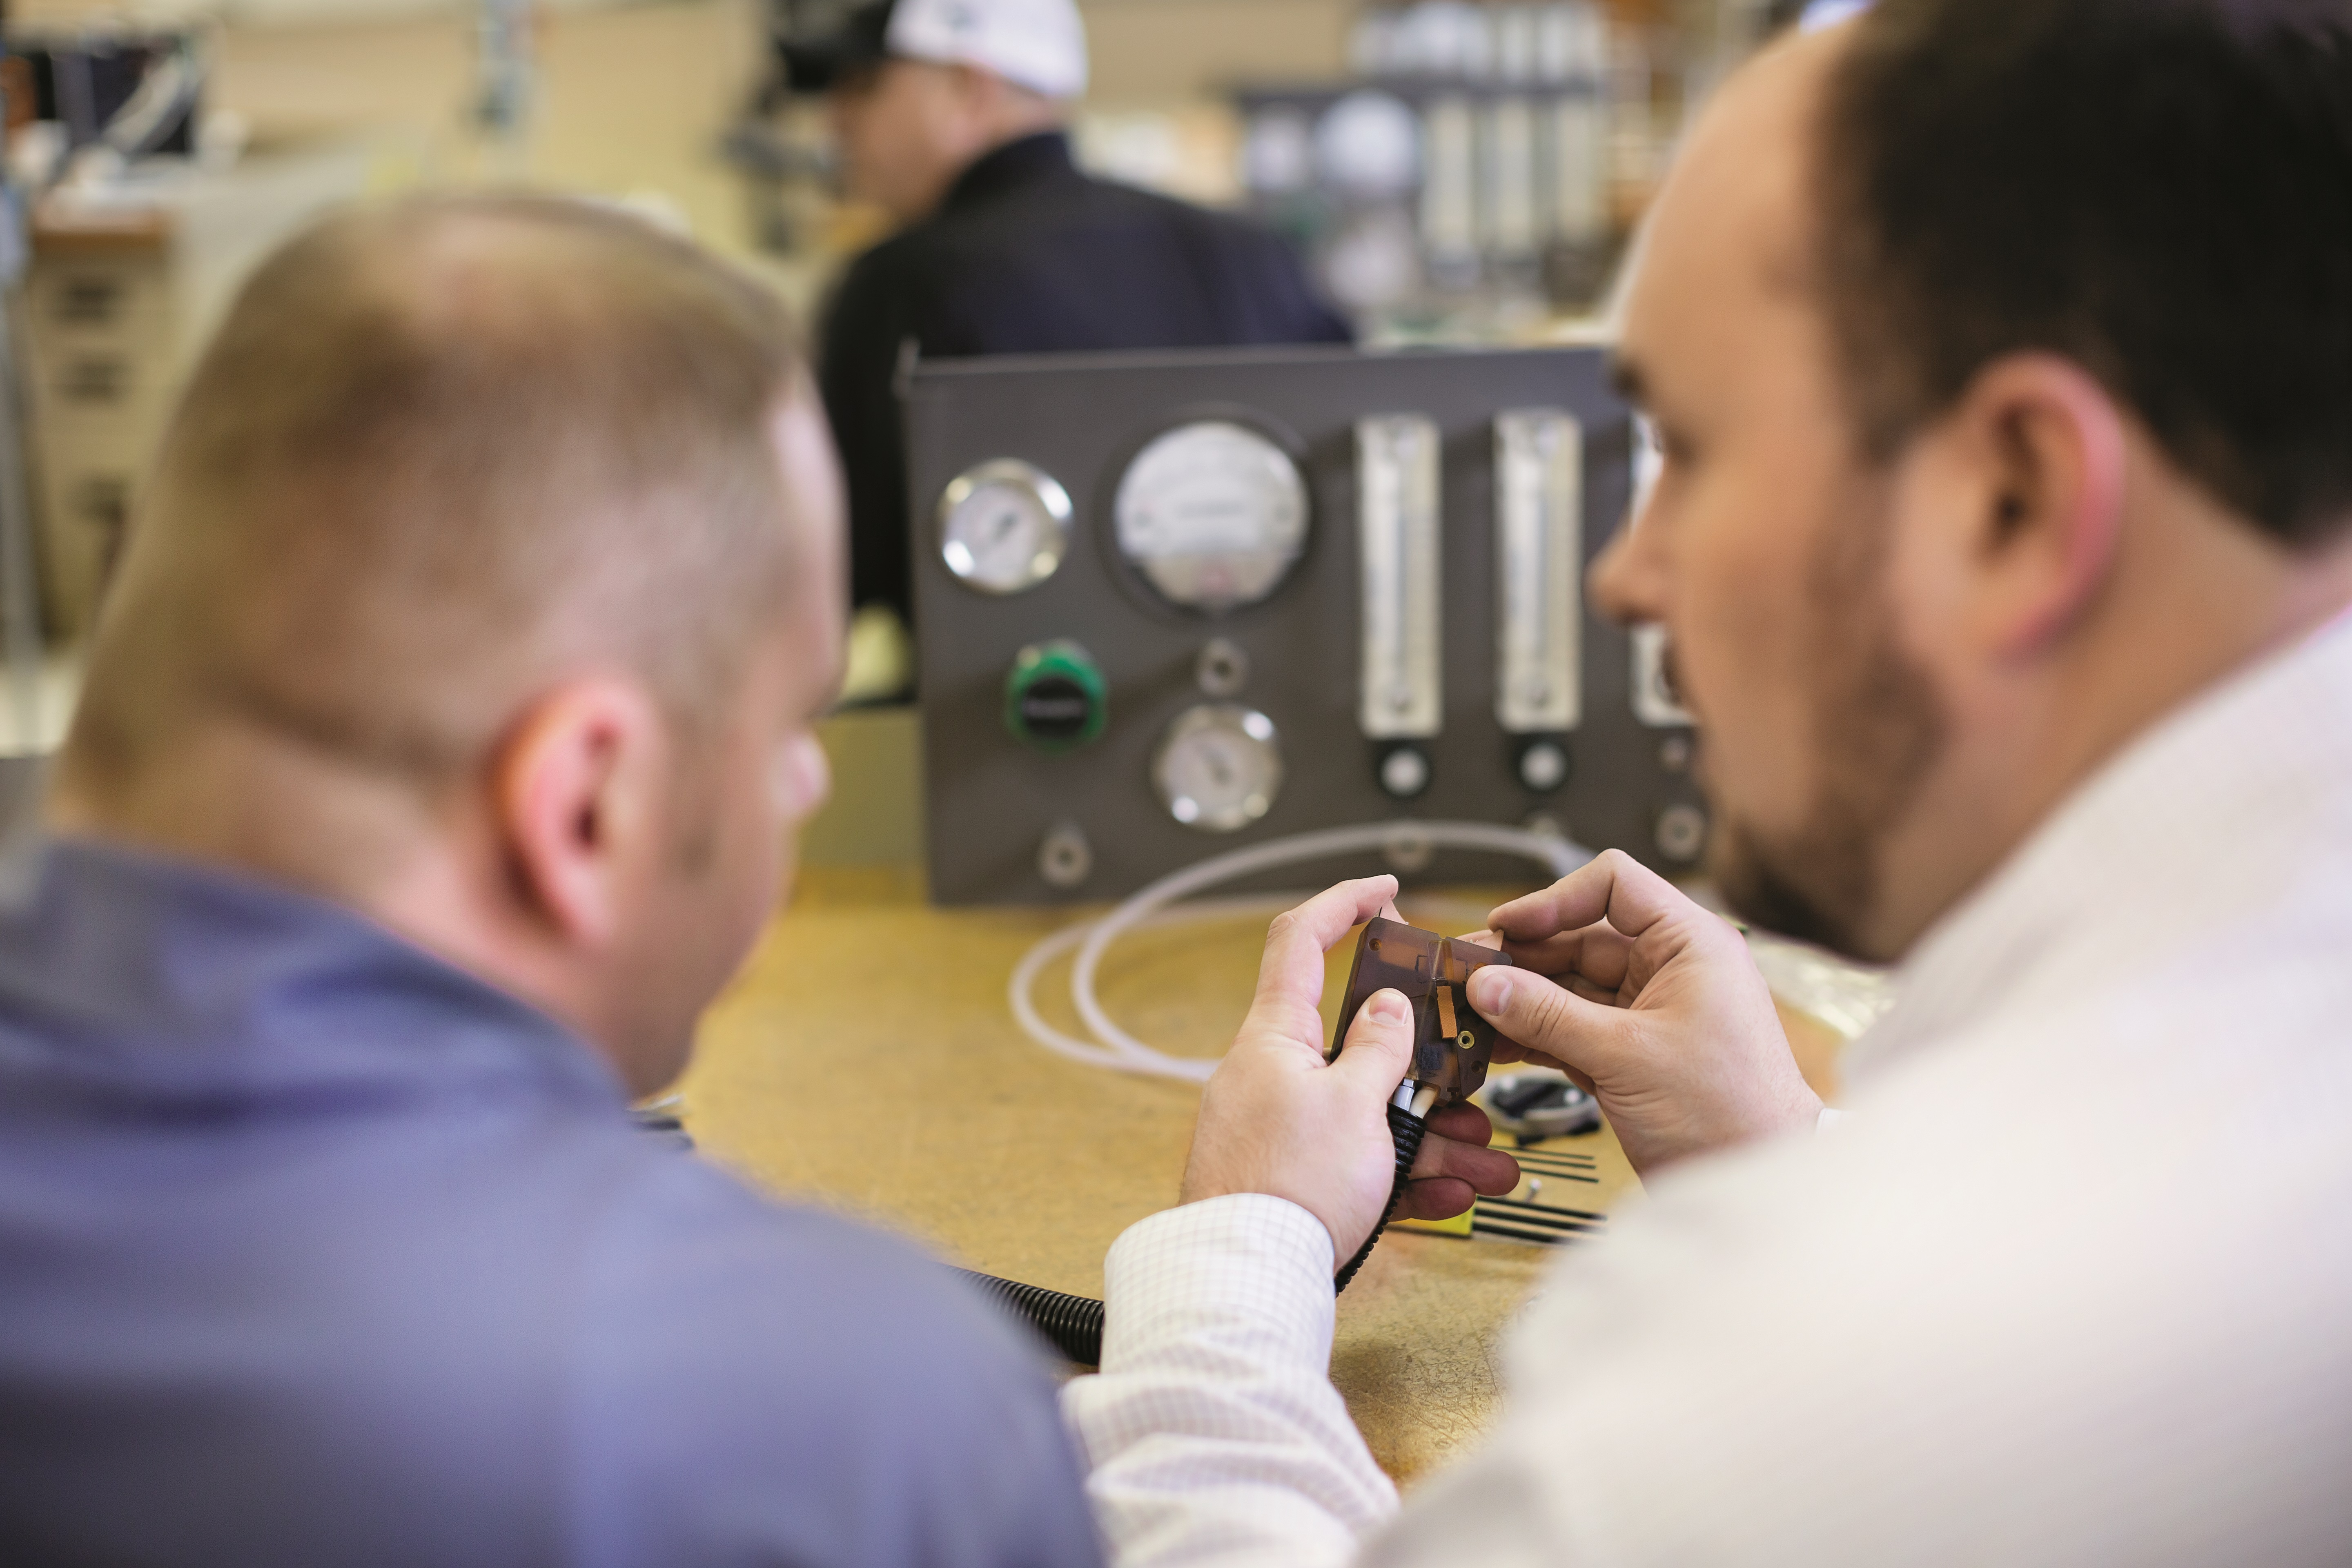 Swagelok Bristol Orbital Welding Training